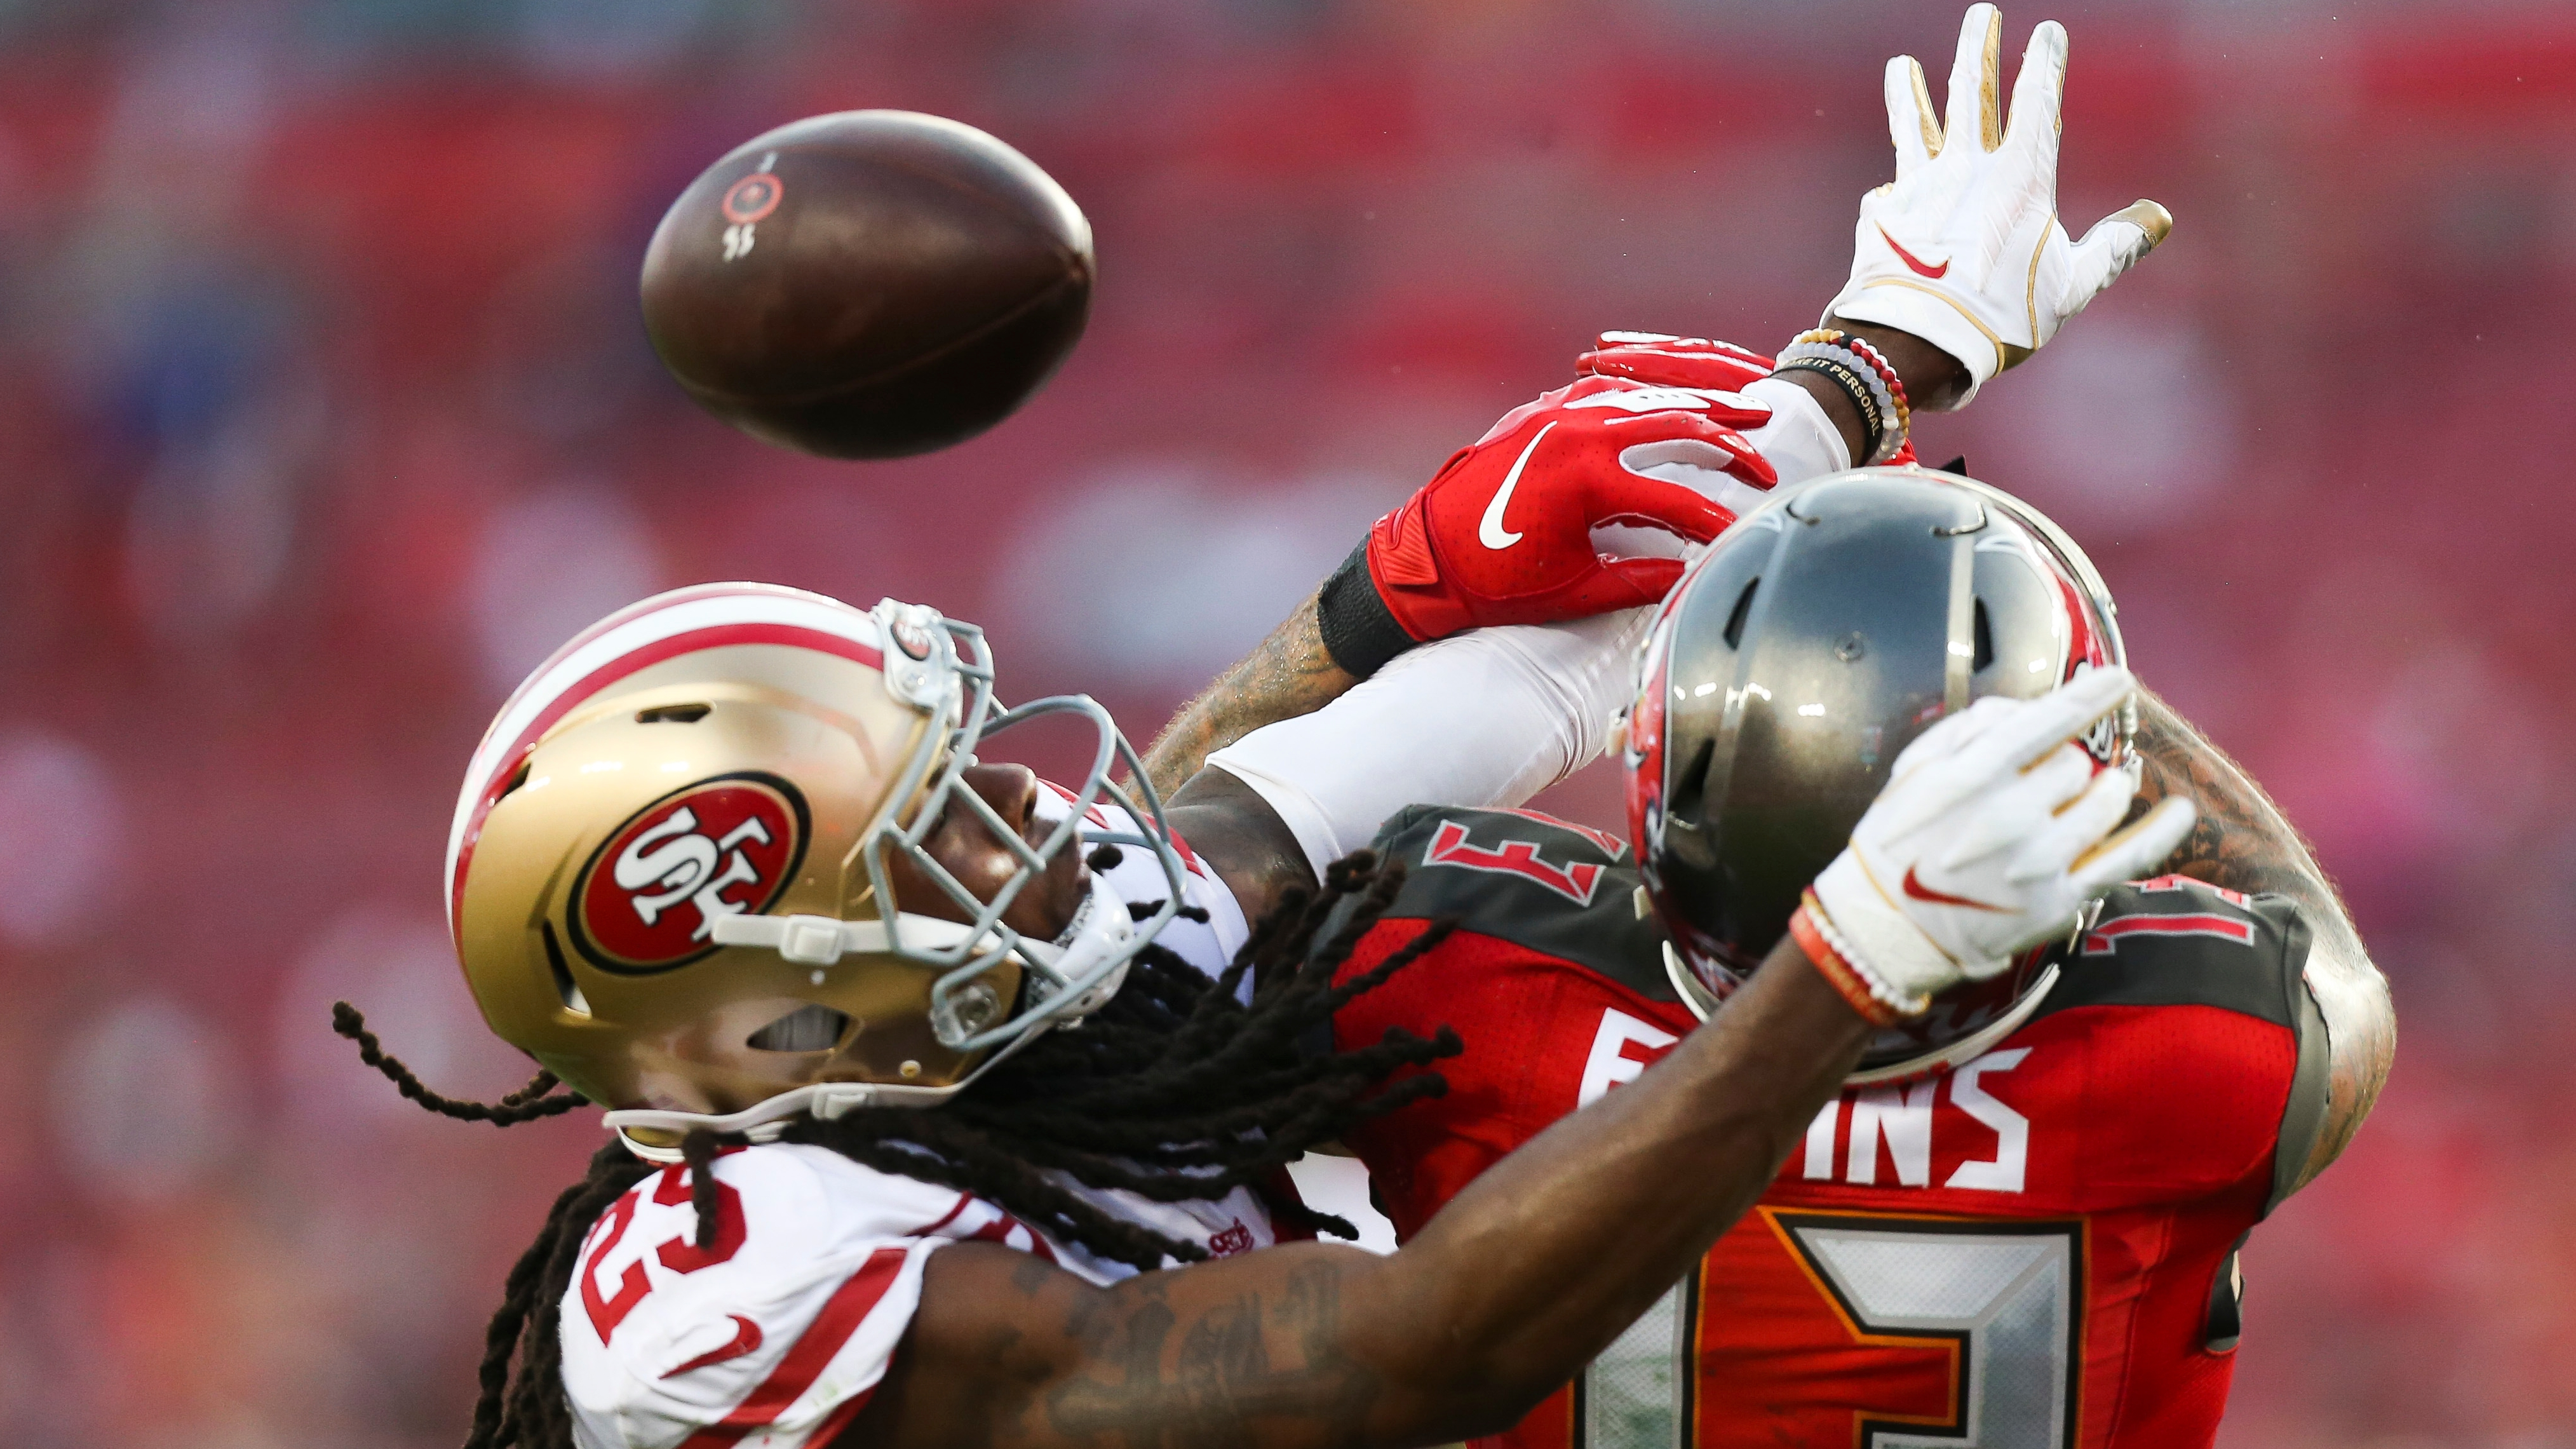 Buccaneers-49ers: What we learned